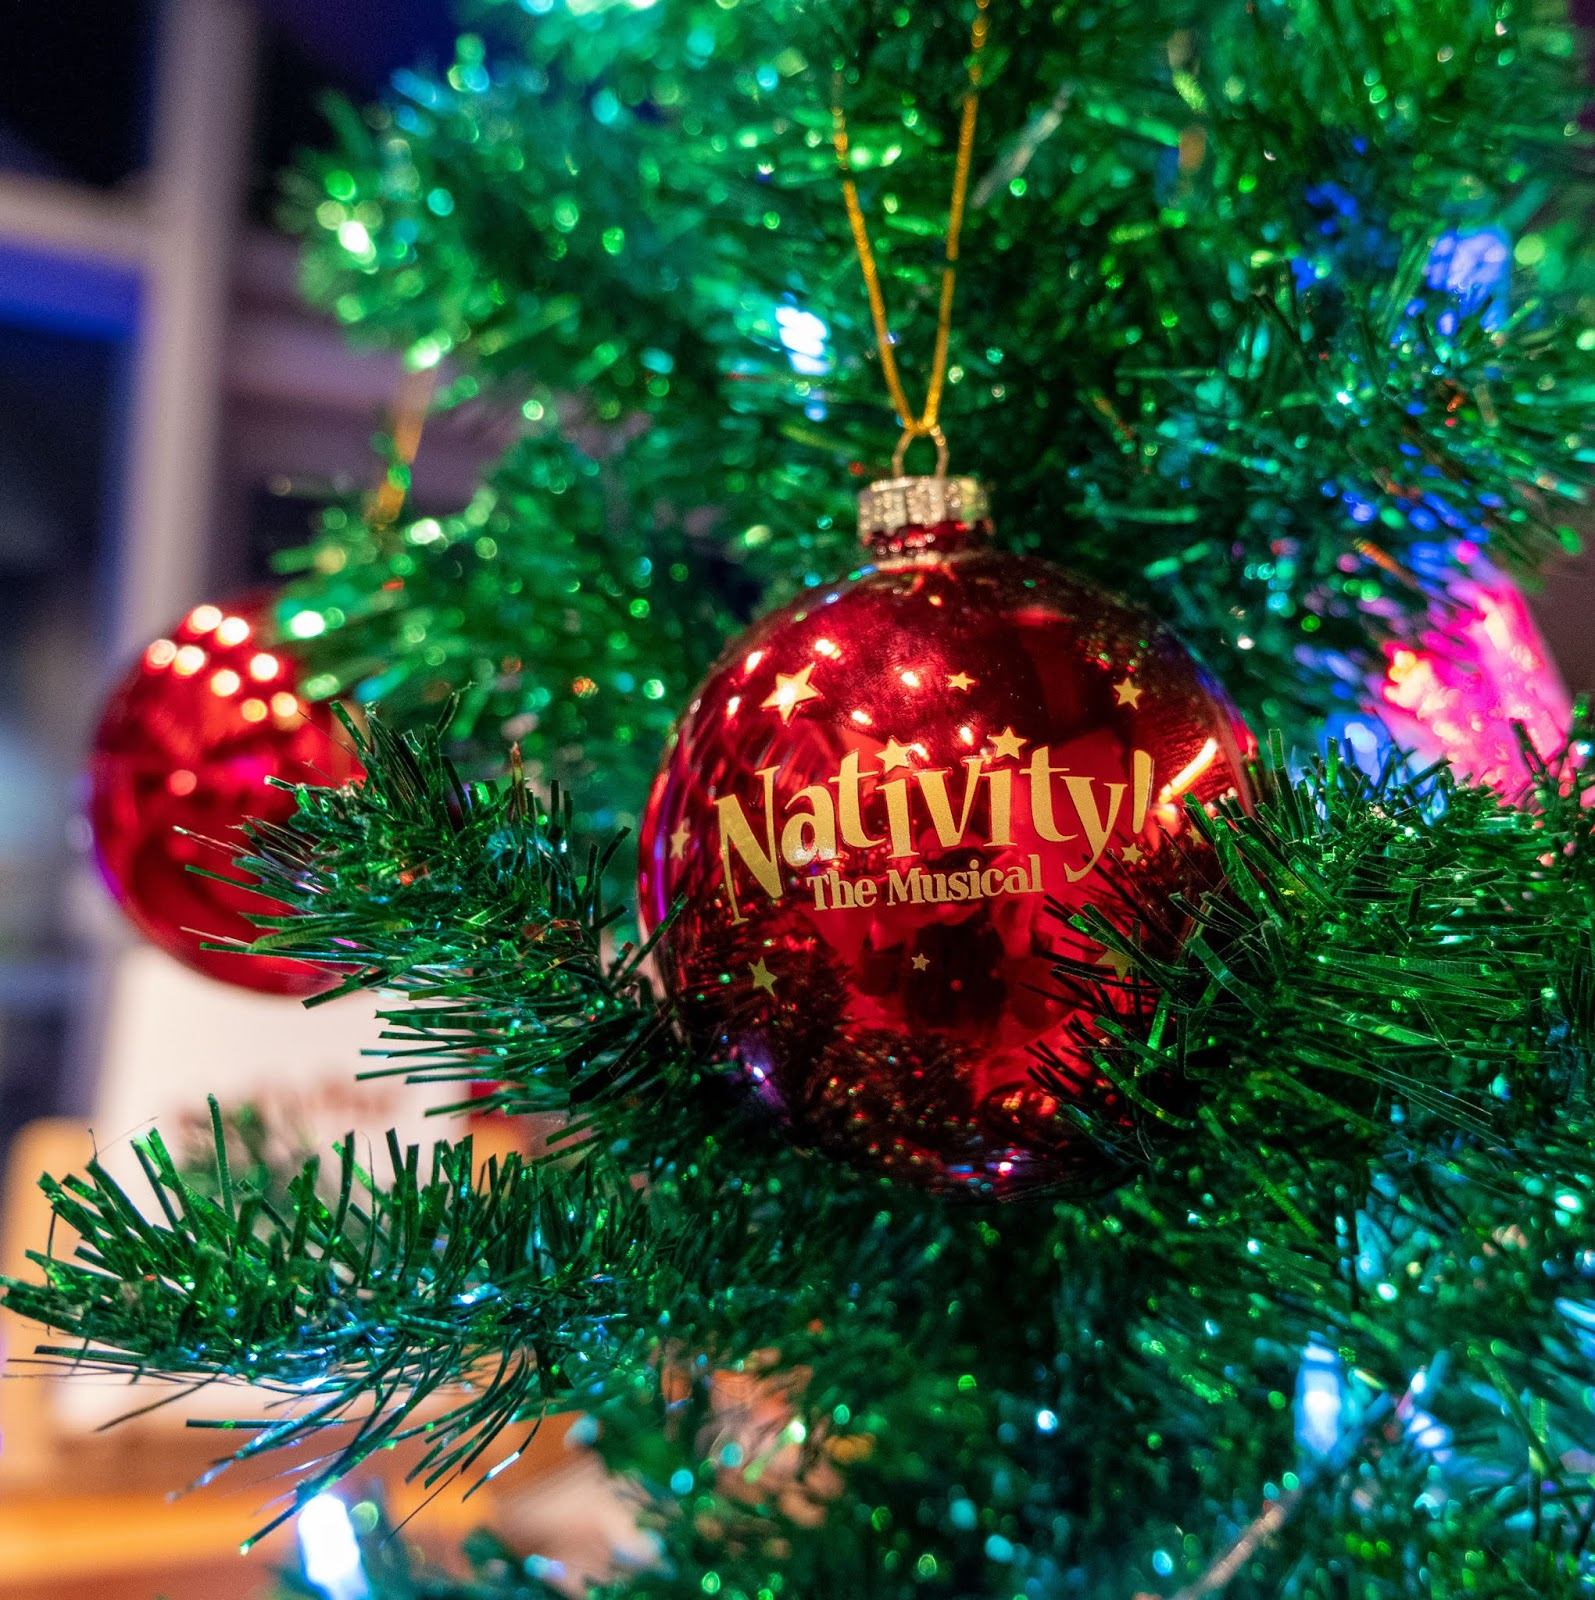 Nativity the Musical souvenir bauble